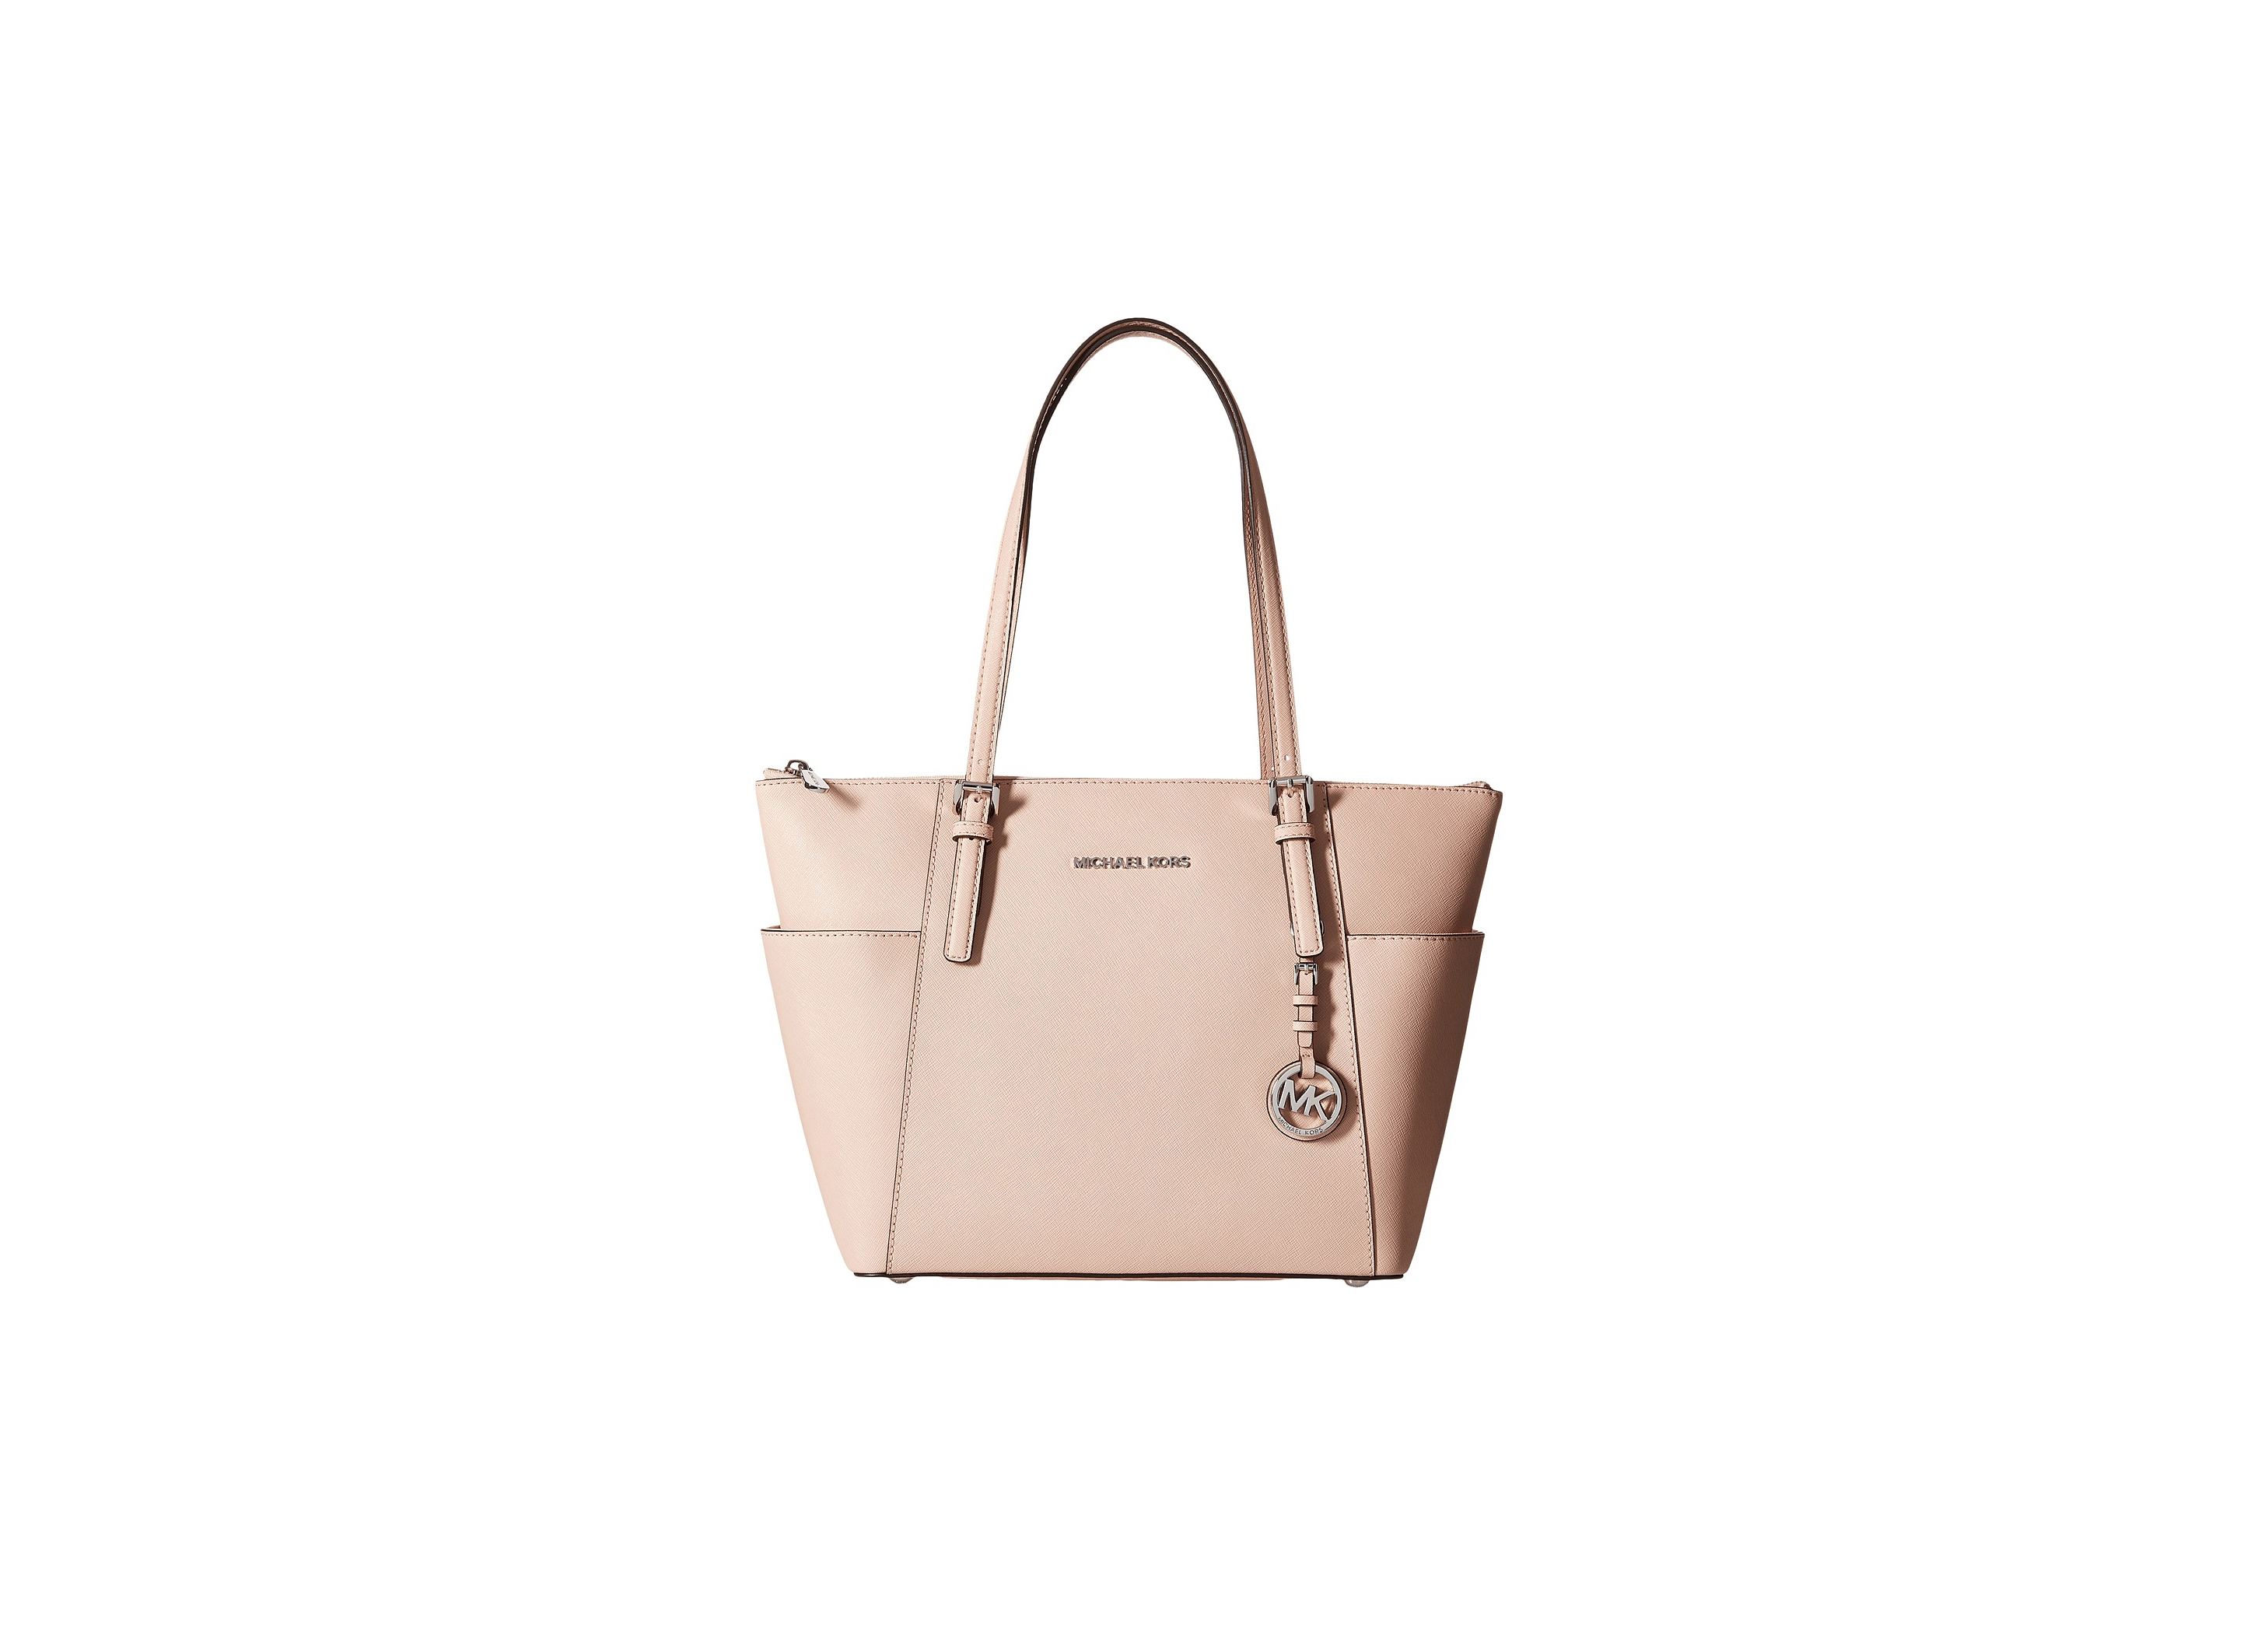 shoppers are obsessed with this michael kors bag and it s obvious why rh usmagazine com